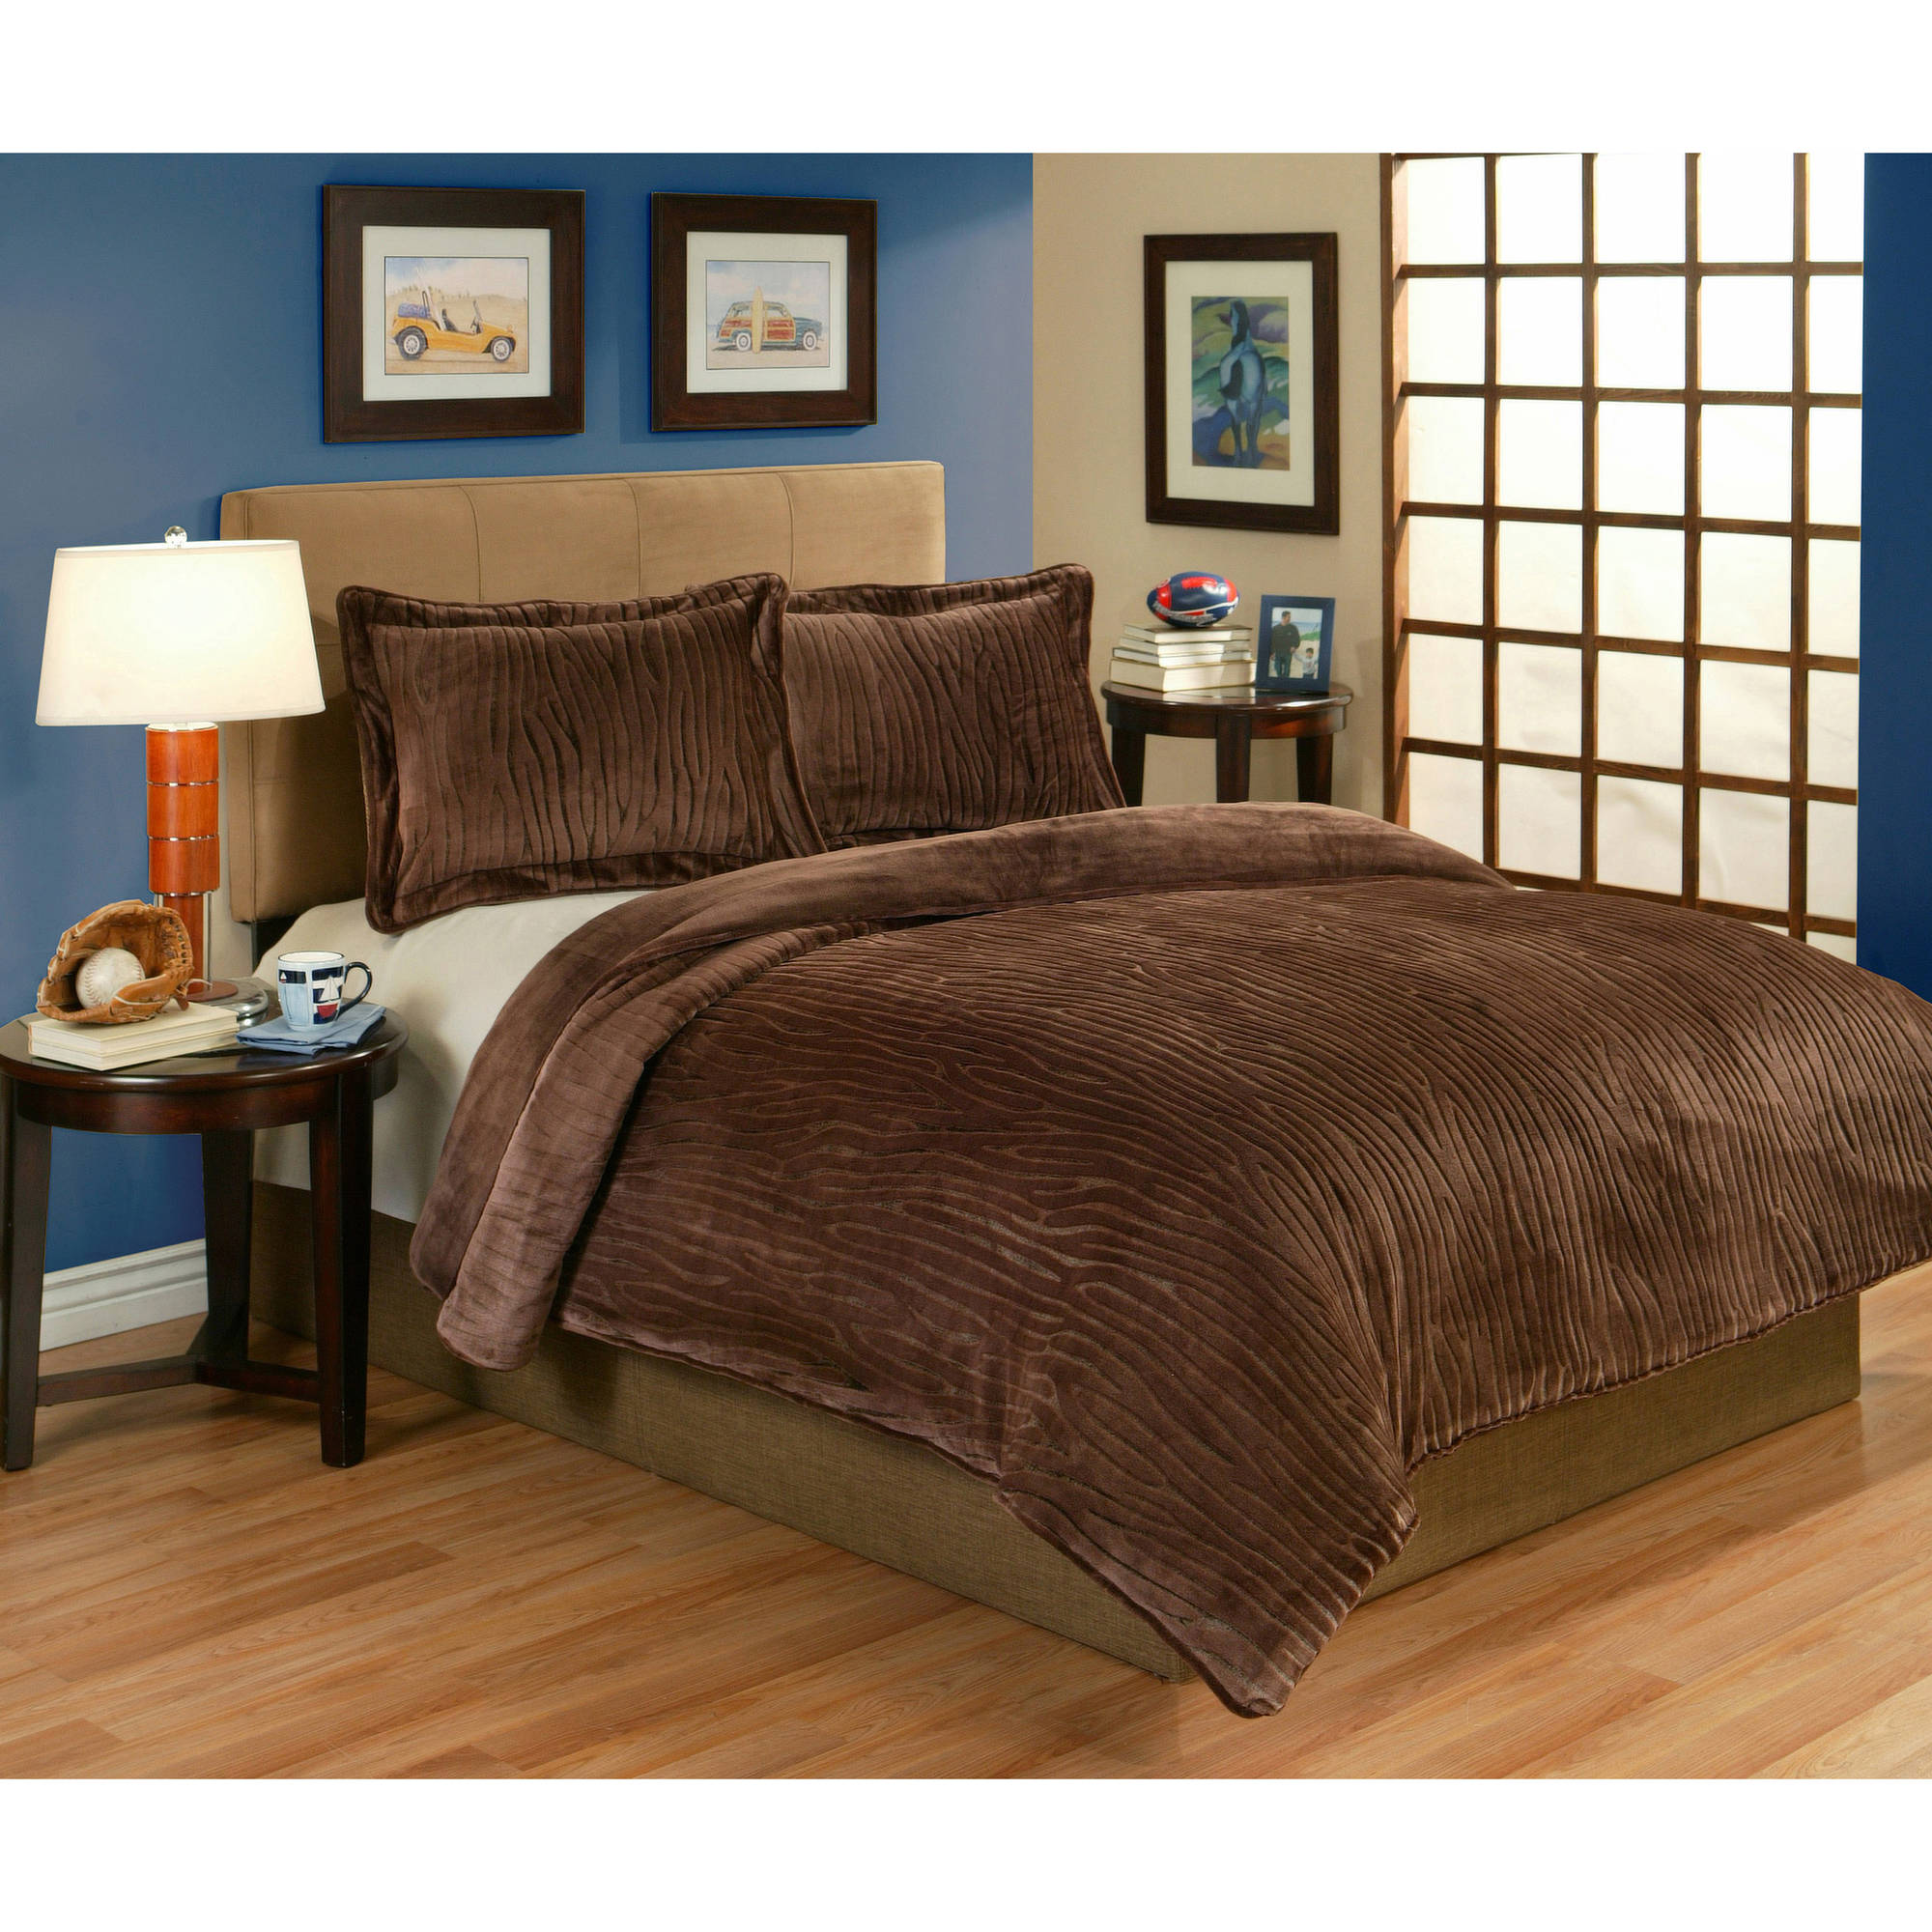 Lodge Velvet Plush Sculpted Bedding Comforter Mini Set by Sun Yin